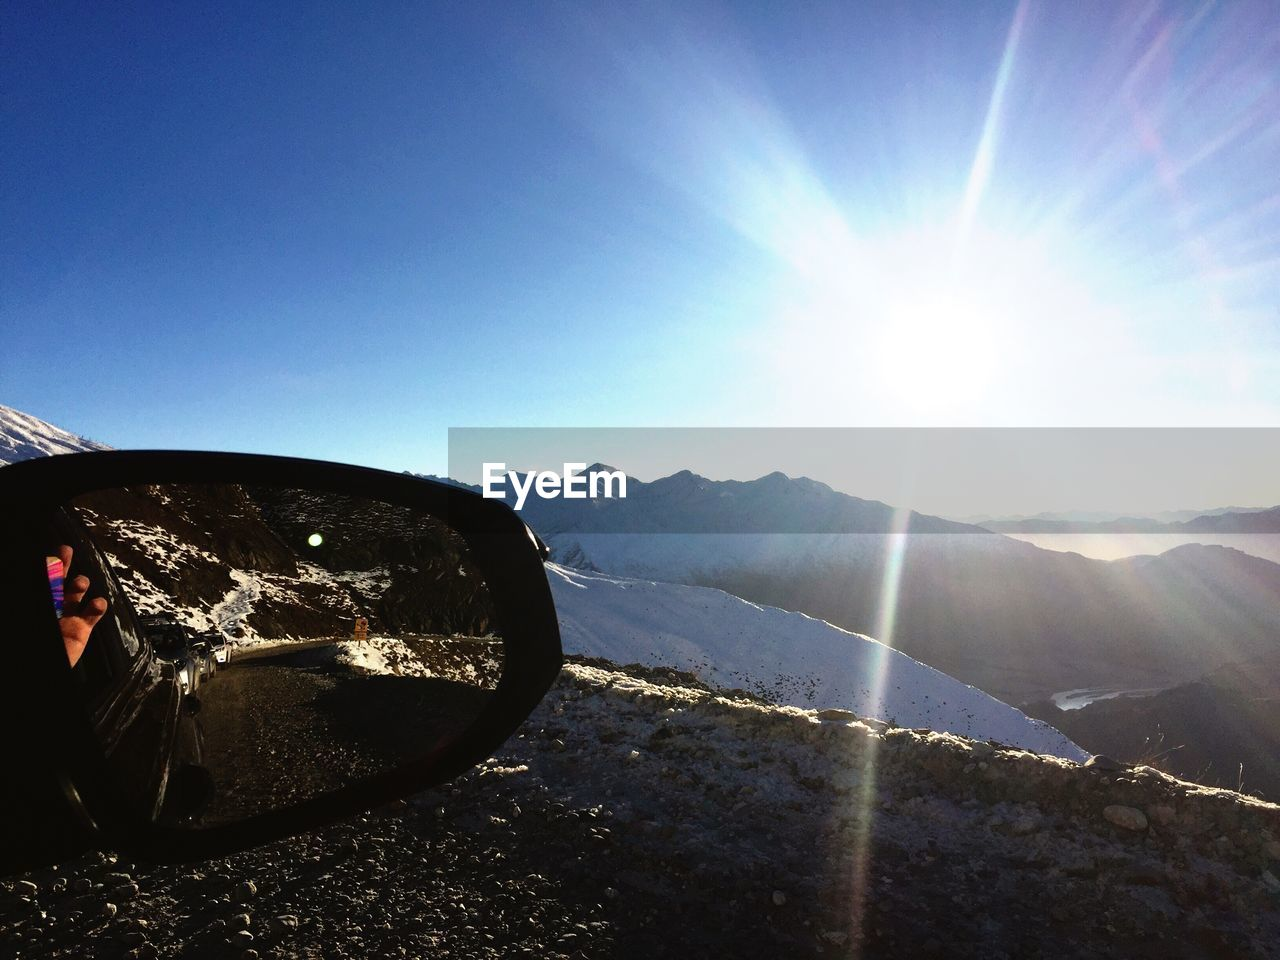 sunbeam, lens flare, sunlight, car, sun, transportation, mountain, reflection, land vehicle, side-view mirror, day, mode of transport, vehicle mirror, landscape, road trip, outdoors, no people, mountain range, nature, scenics, road, beauty in nature, sky